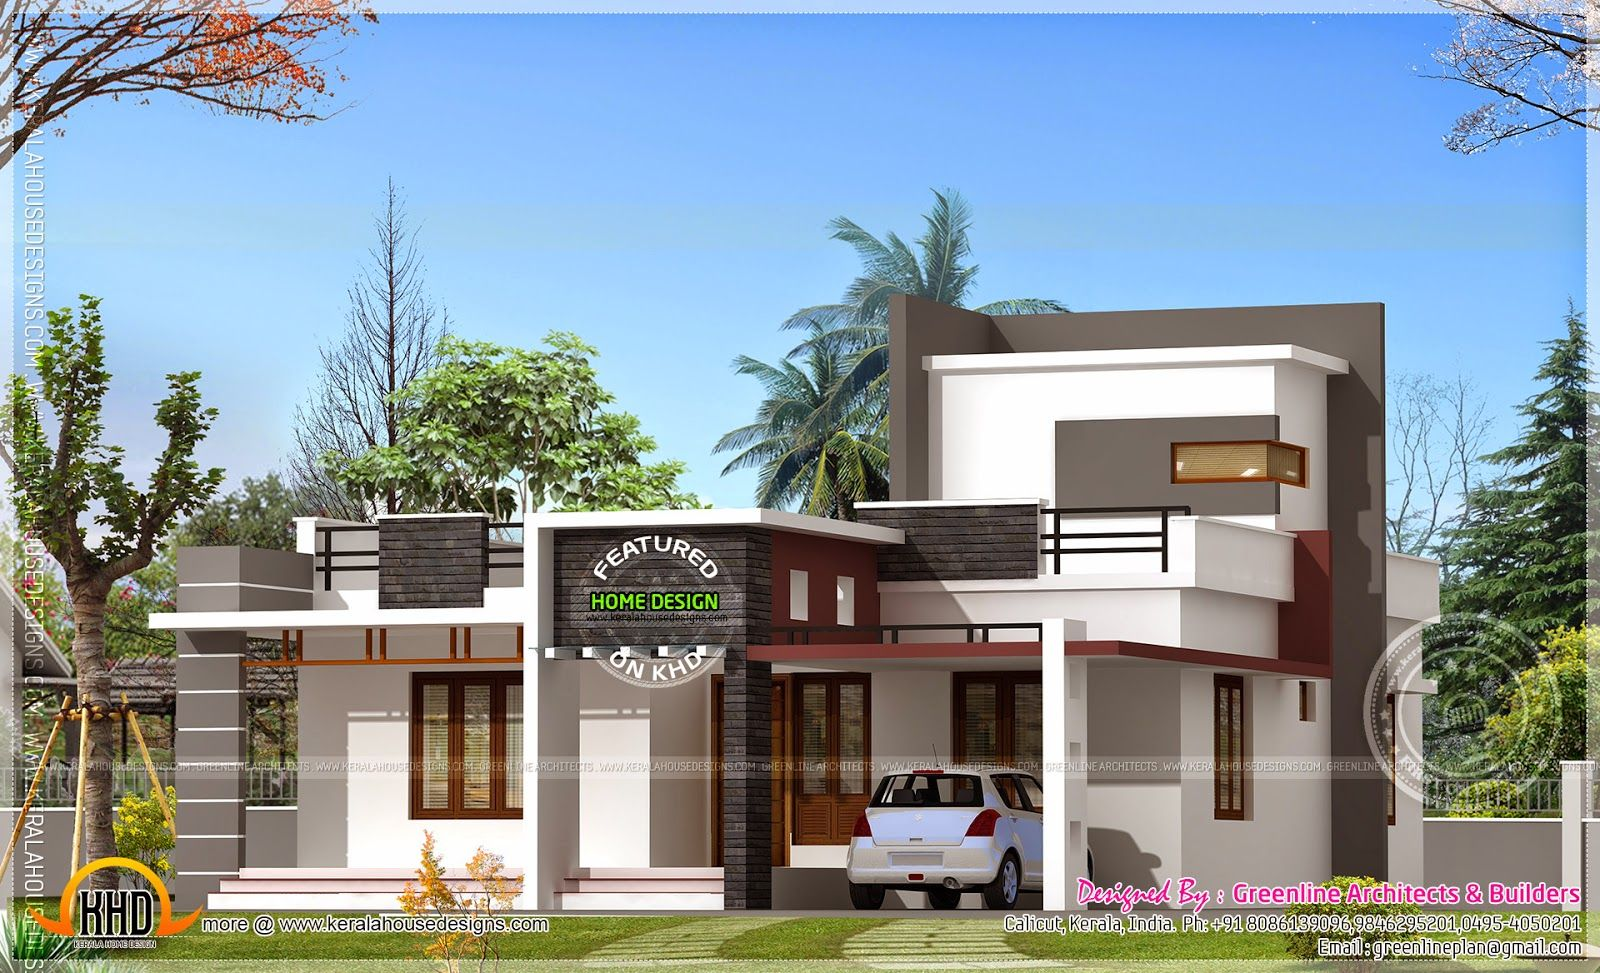 Bedroom House Feet Home Kerala Plans See Floor Plan Drawing And Facilities  Ground · Home DesignDesign IdeasInterior ...